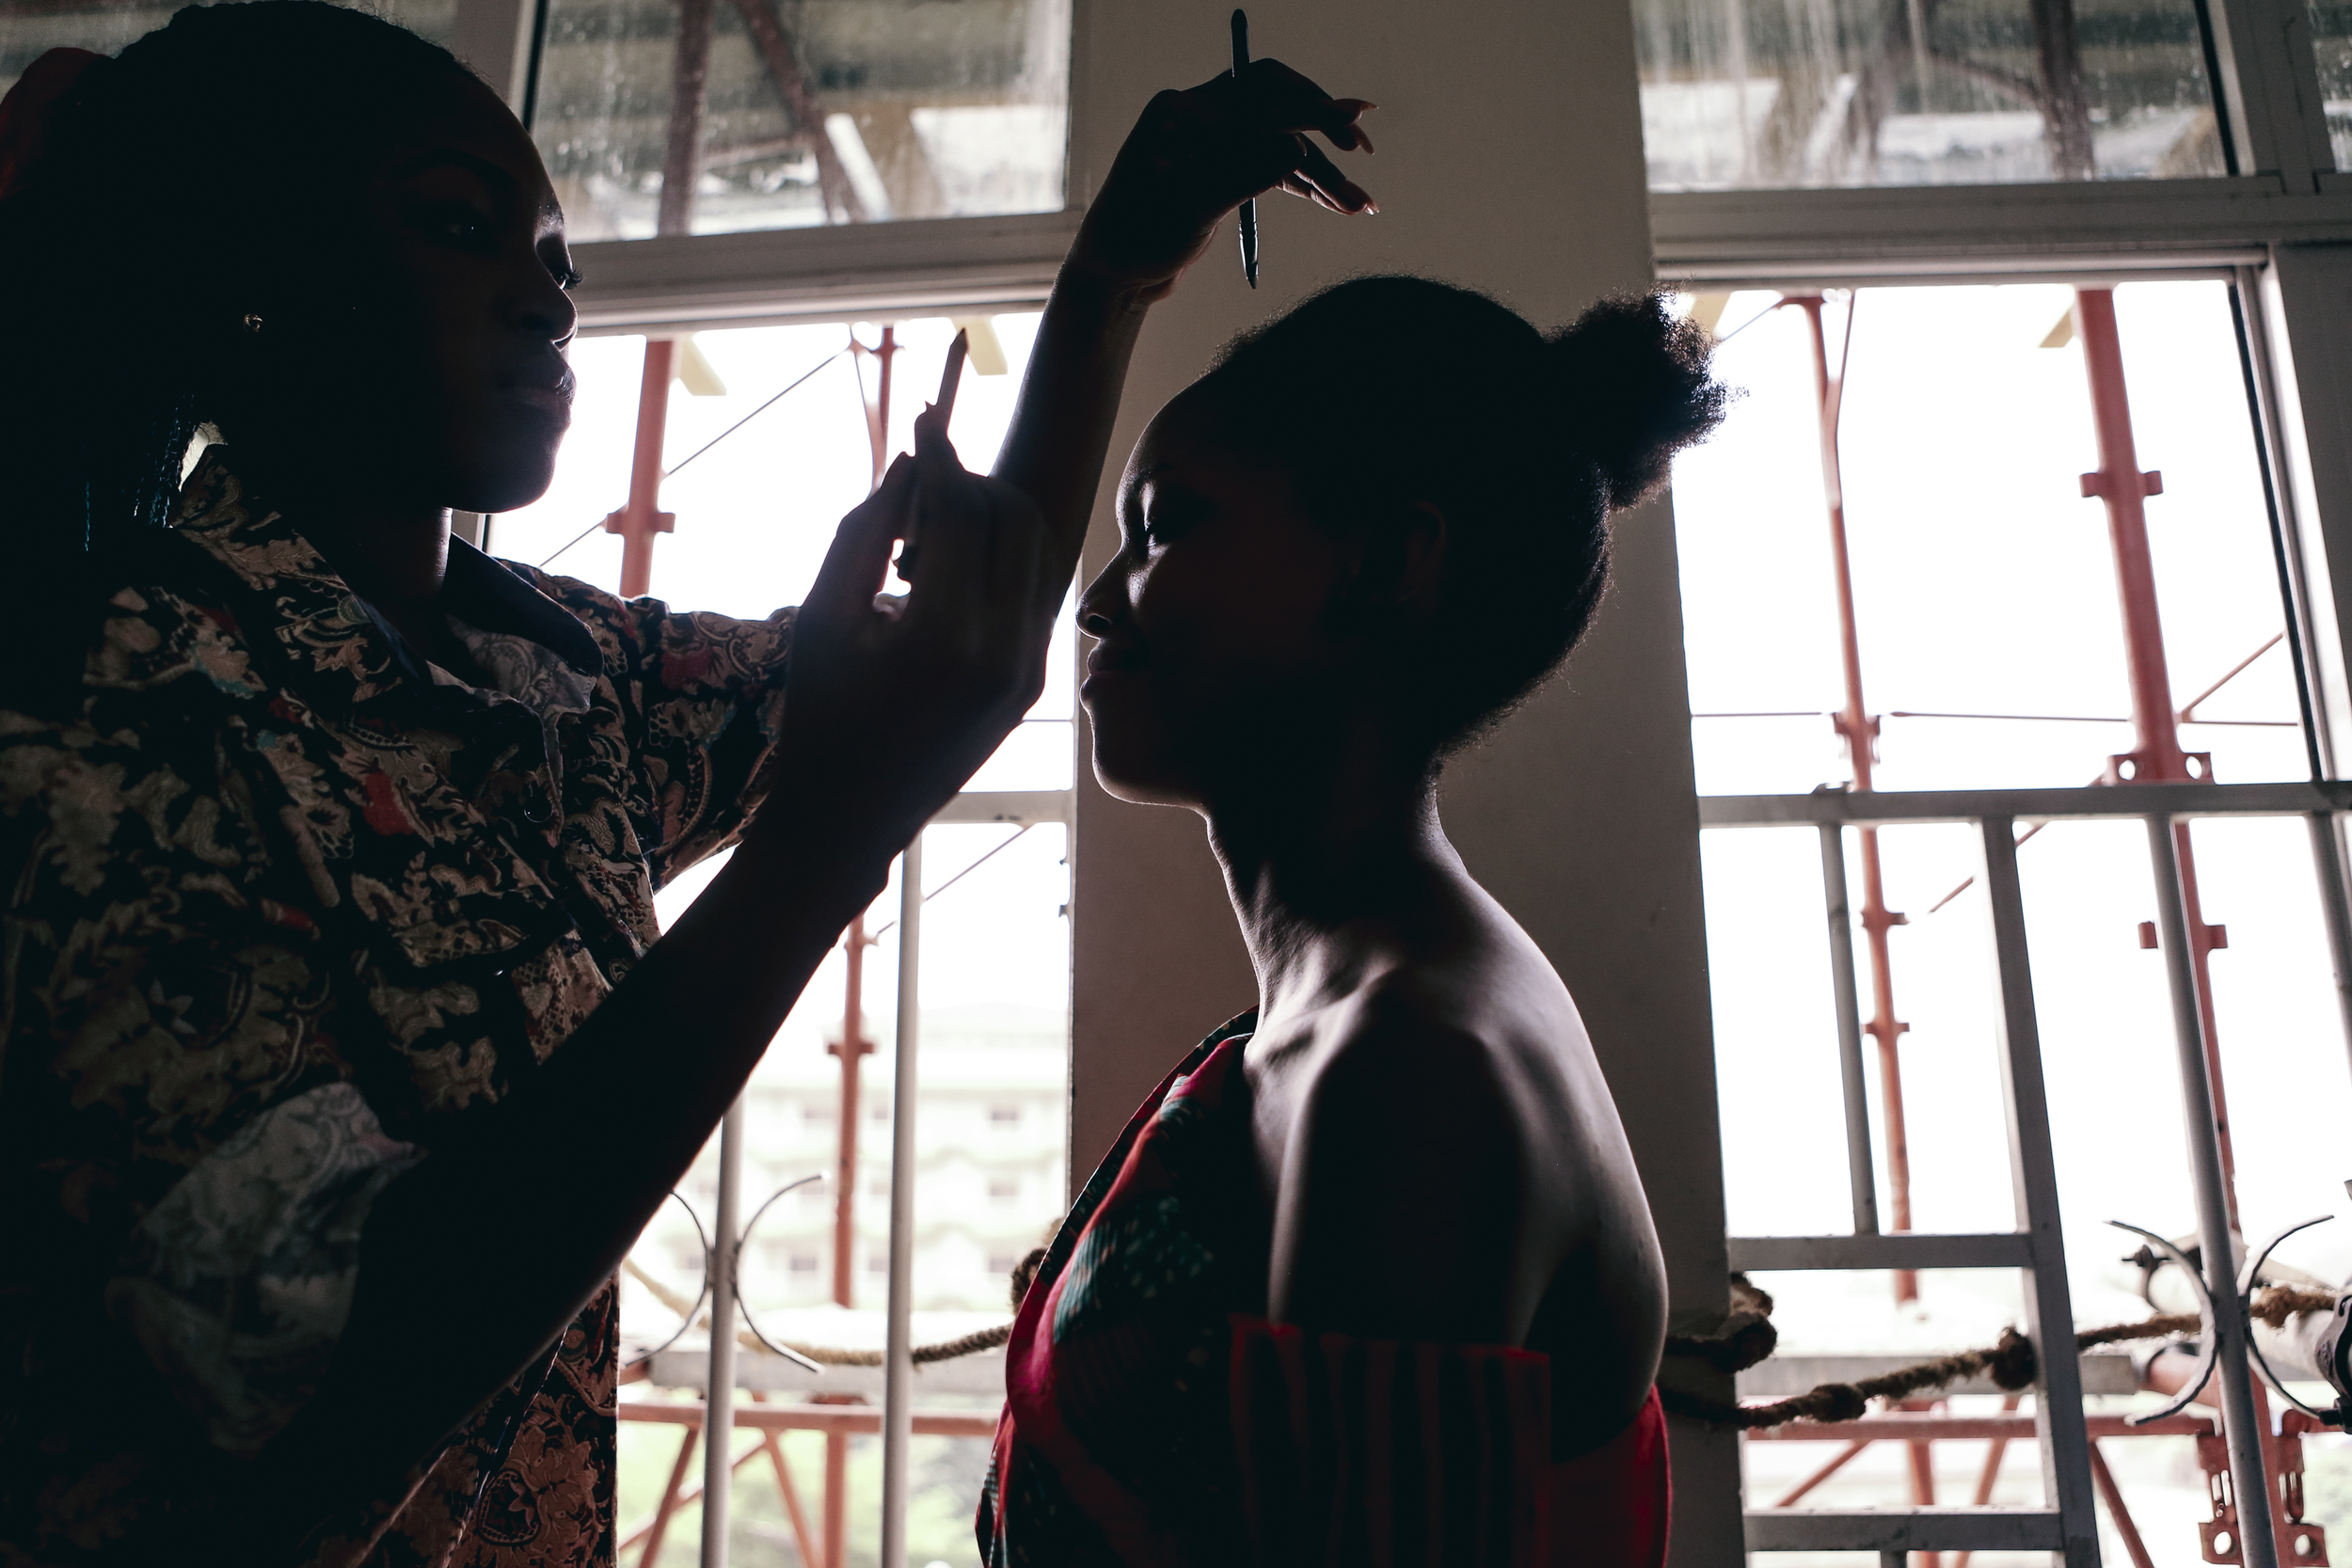 Since the lamps aren't working inside, a girl fixes her friend's make-up in the daylight coming from the window.